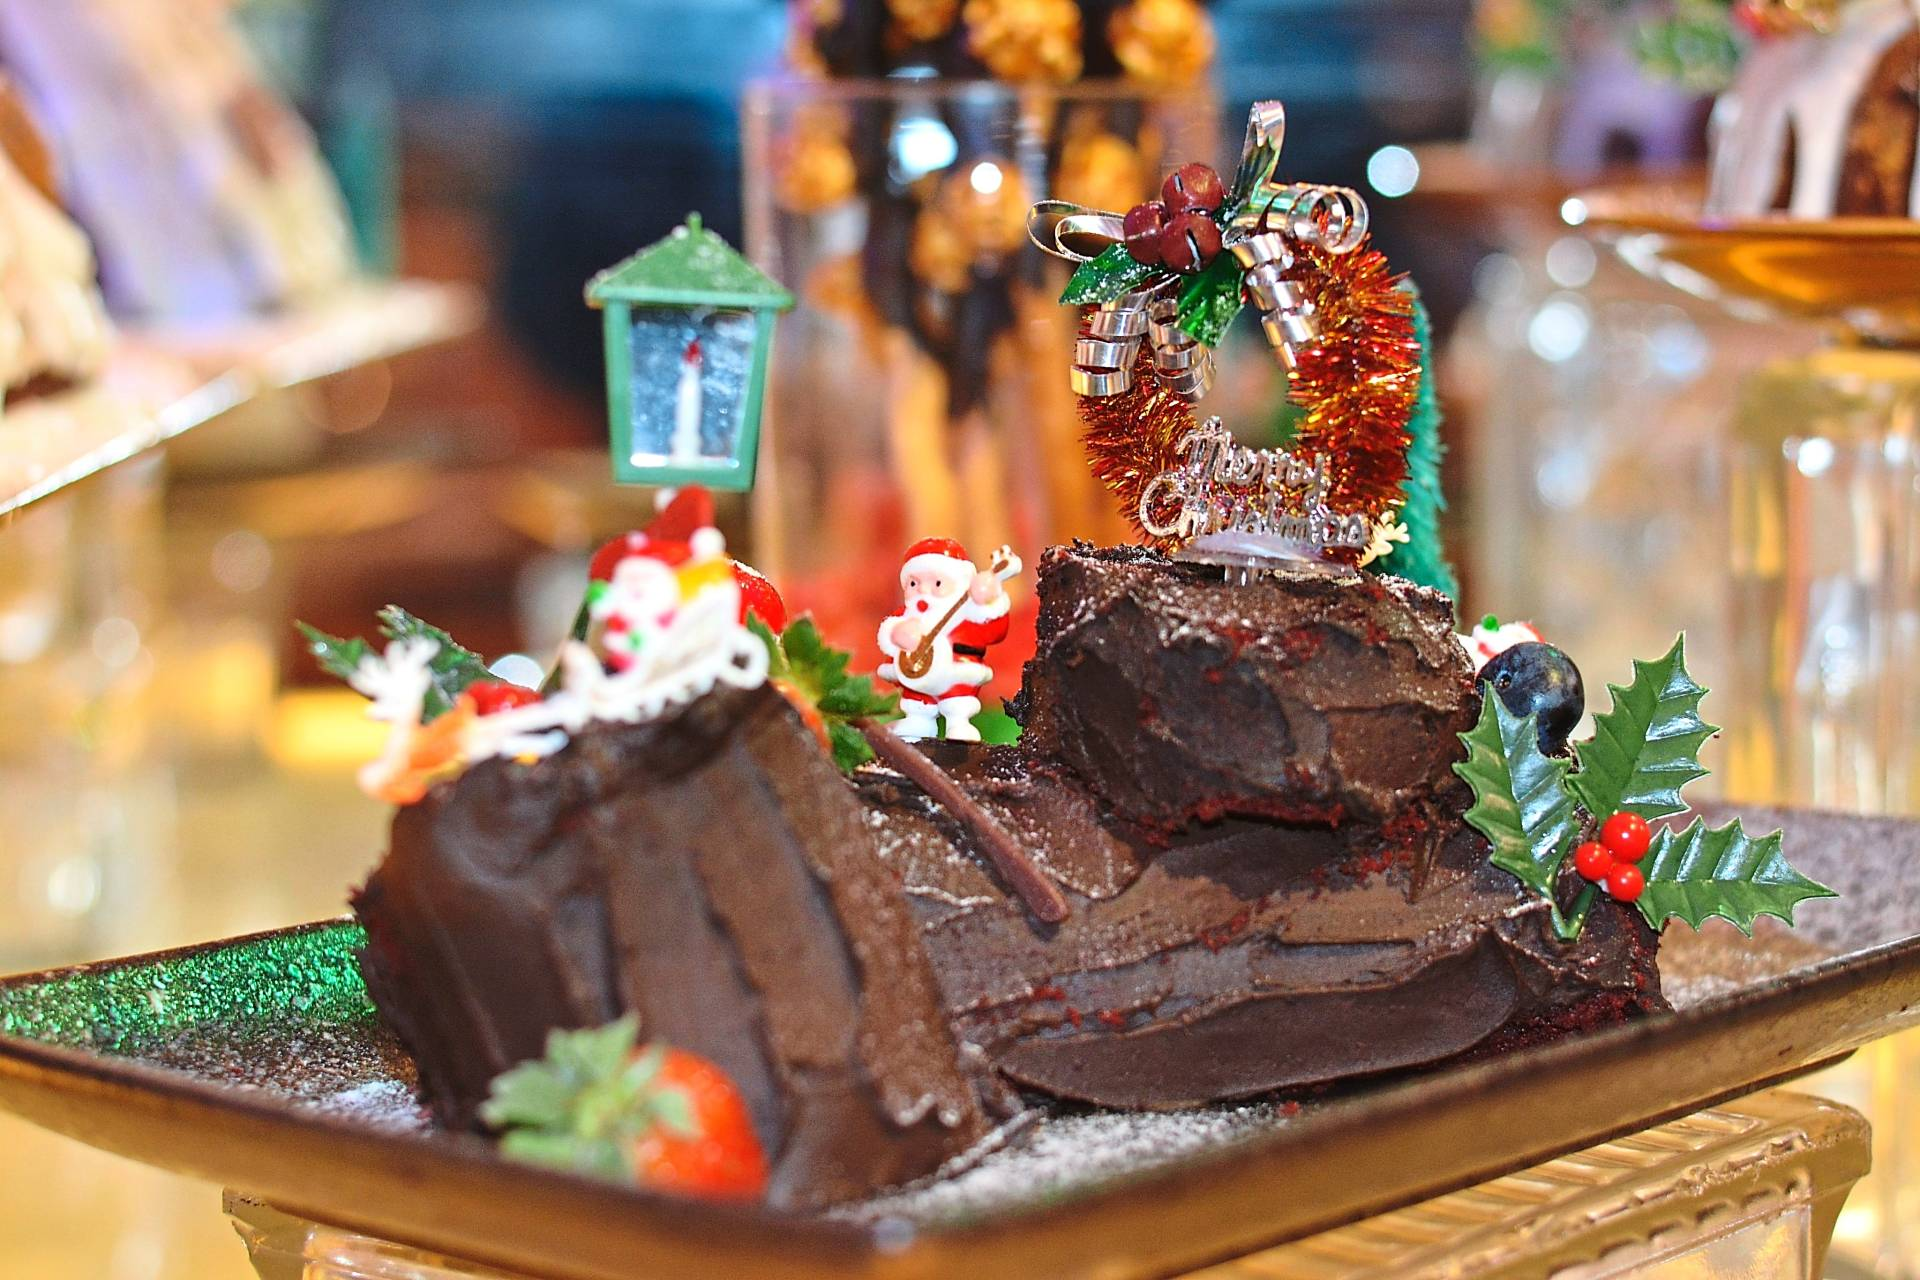 The chocolate yule log will tempt diners at the Christmas Eve buffet dinner.